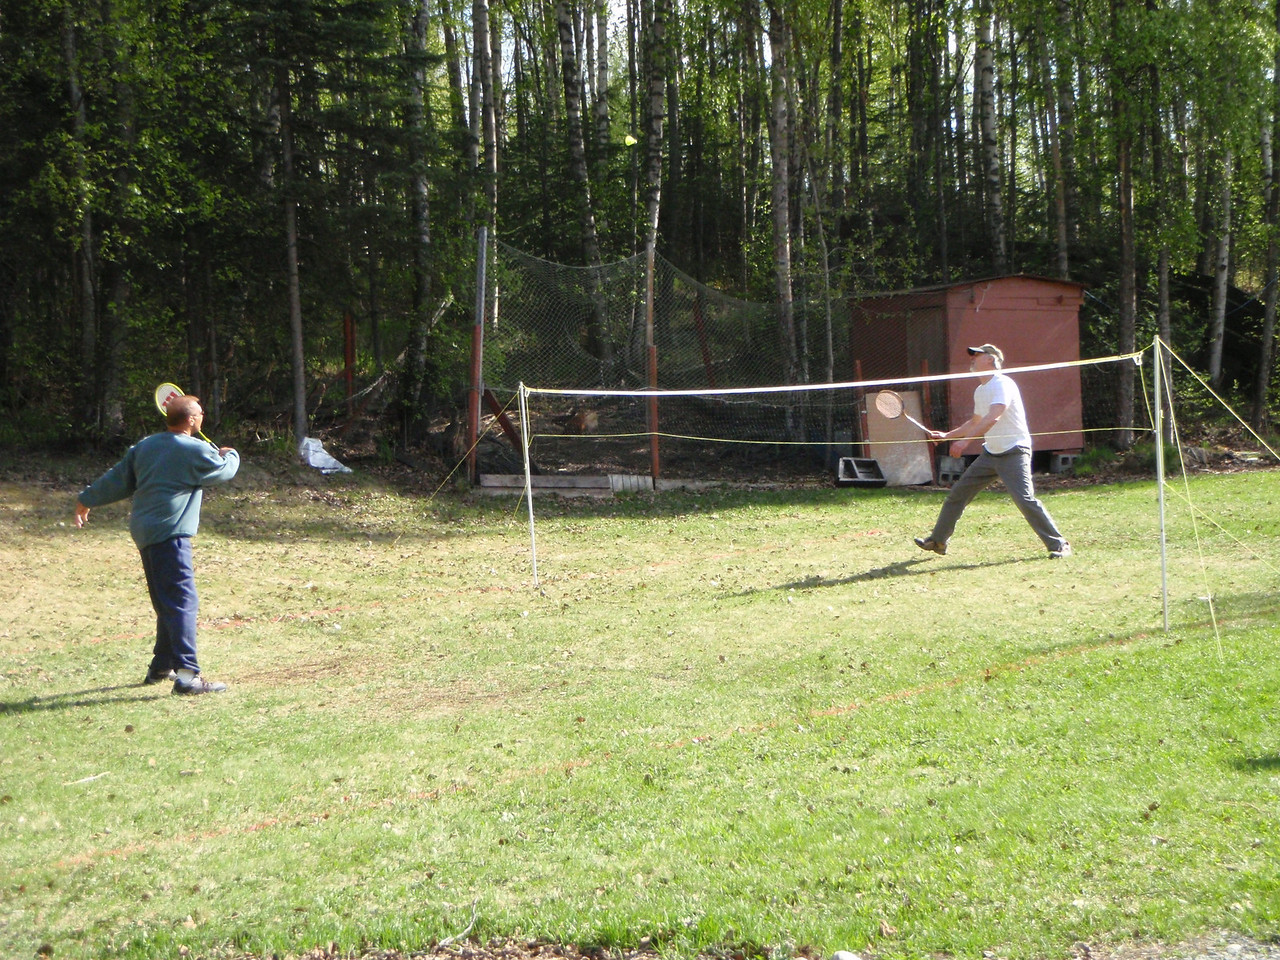 Badminton in the back yard at 9PM in bright sunshine